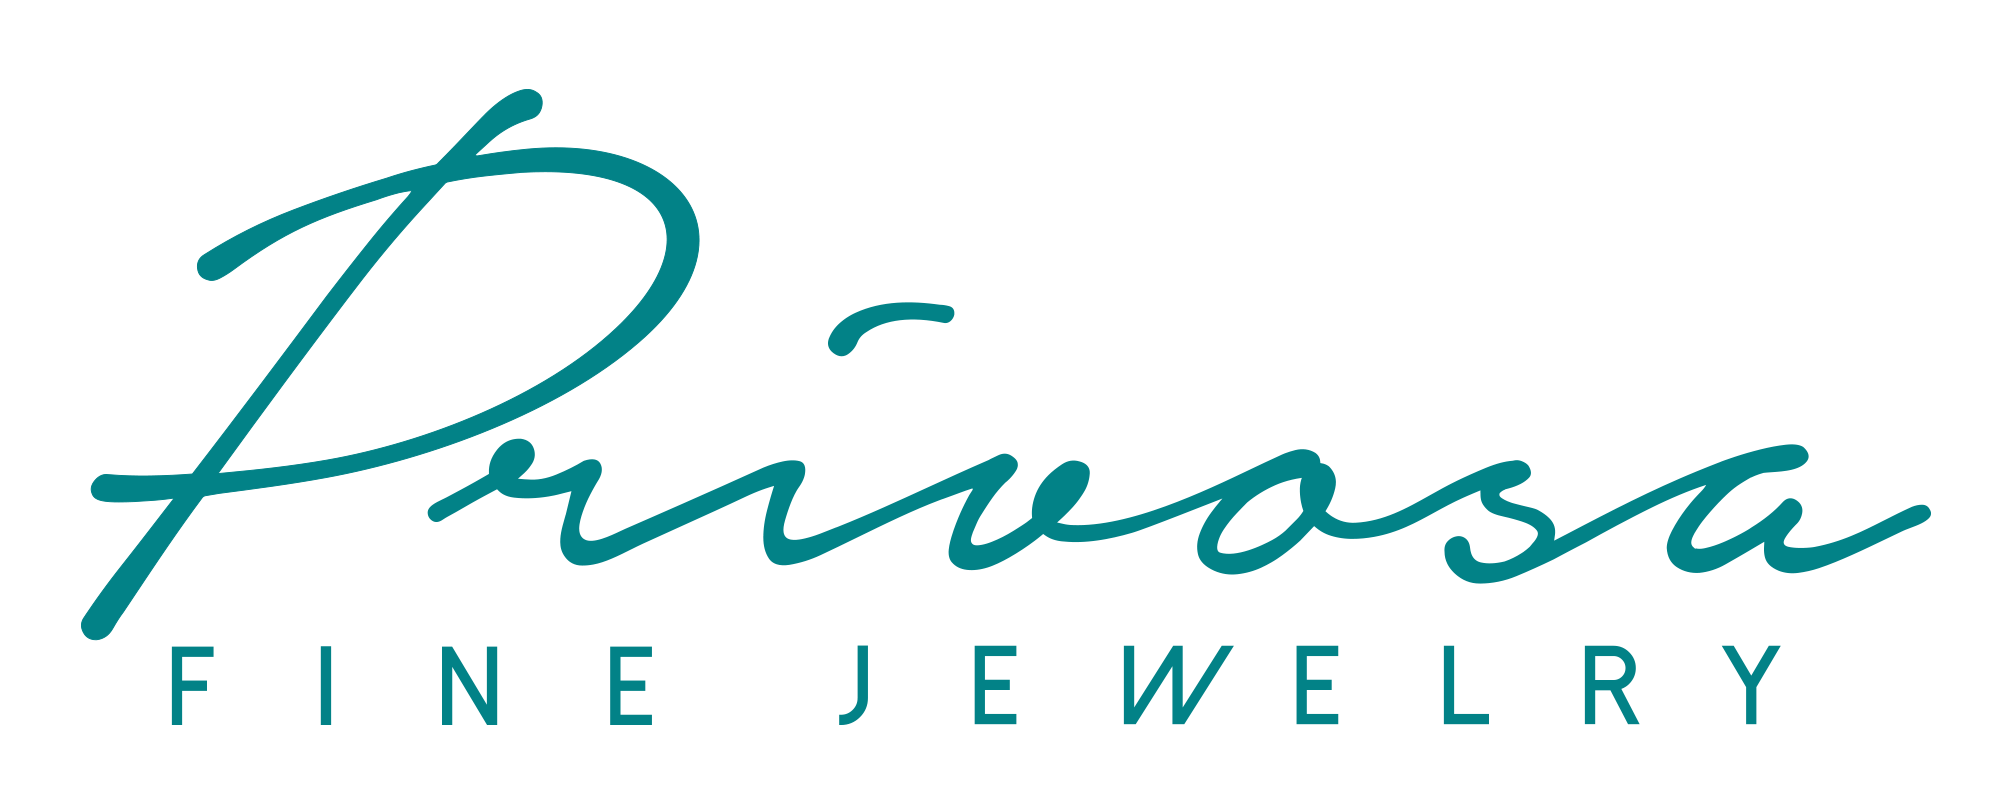 privosa-fine-jewelry-houston-tx_logo